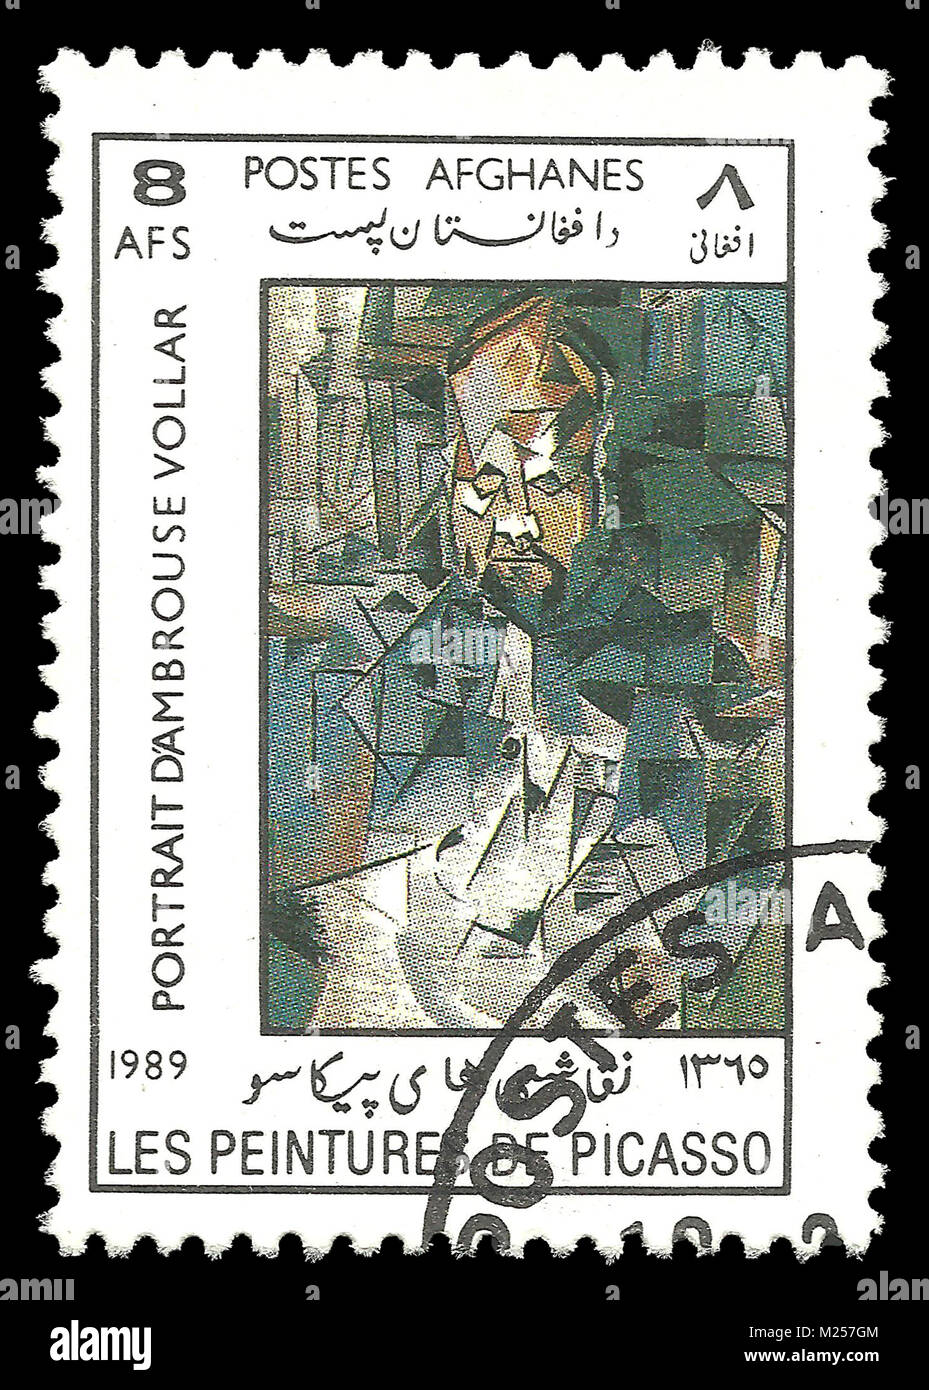 Afghanistan - stamp 1989: Color edition on Art, shows Painting Portrait Of Ambroise Vollard by Pablo Picasso - Stock Image